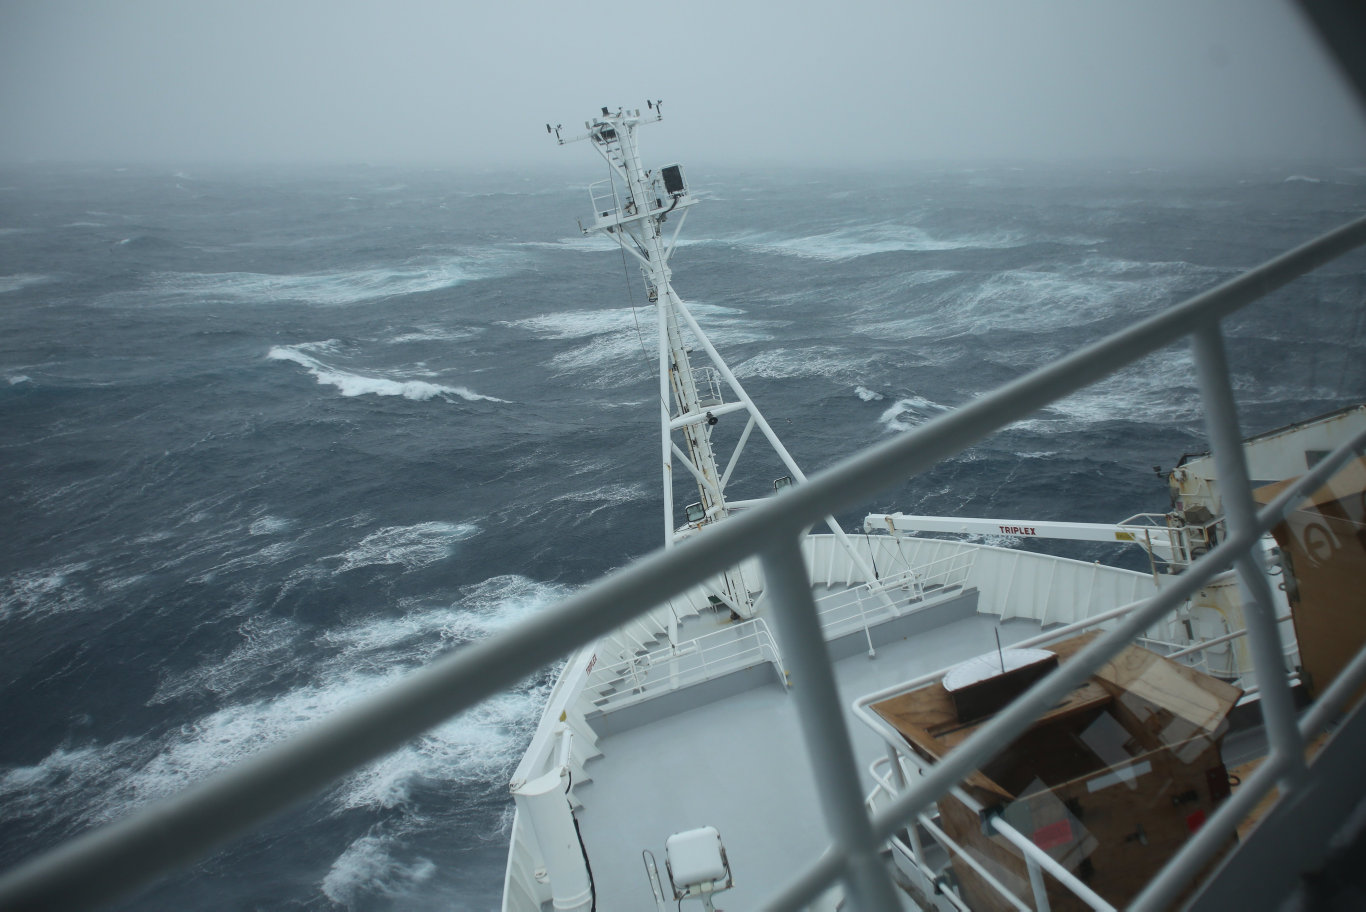 CSIRO RV Investigator in the Southern Ocean.